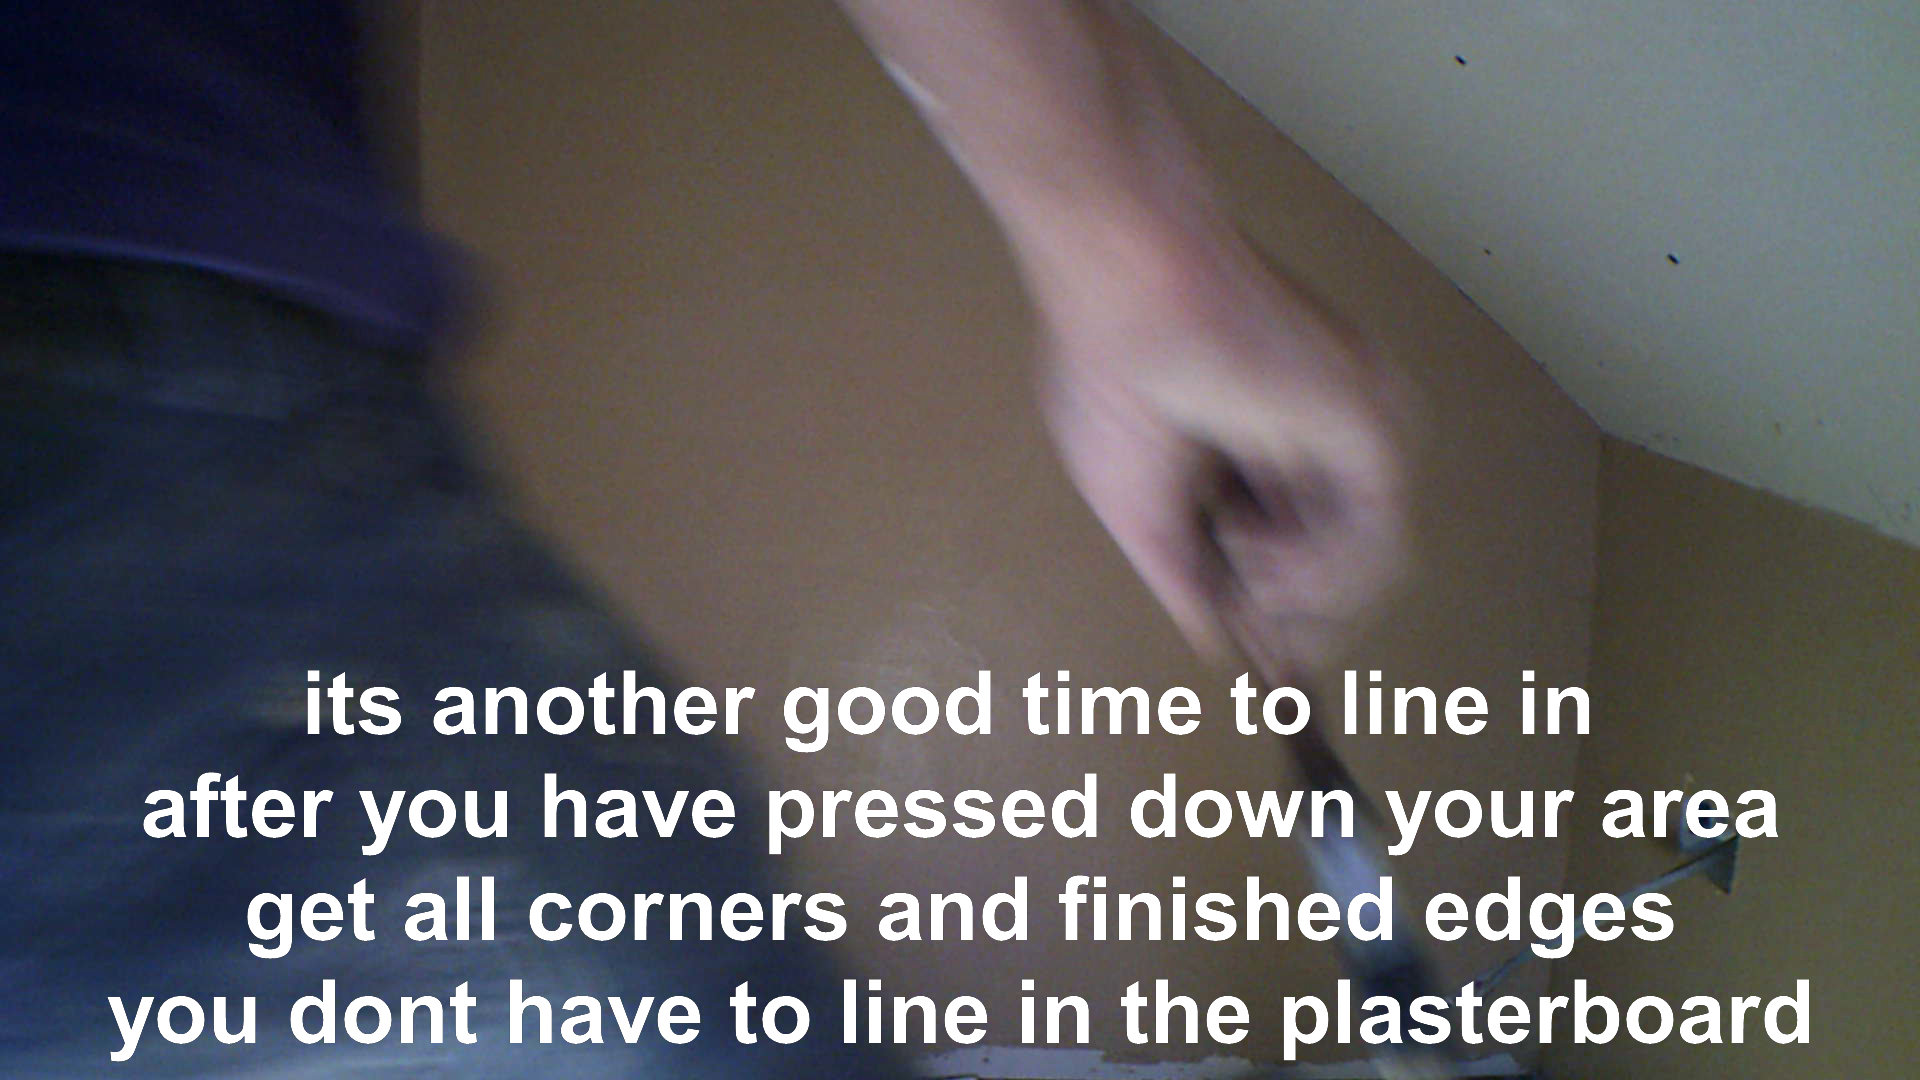 lining in plaster